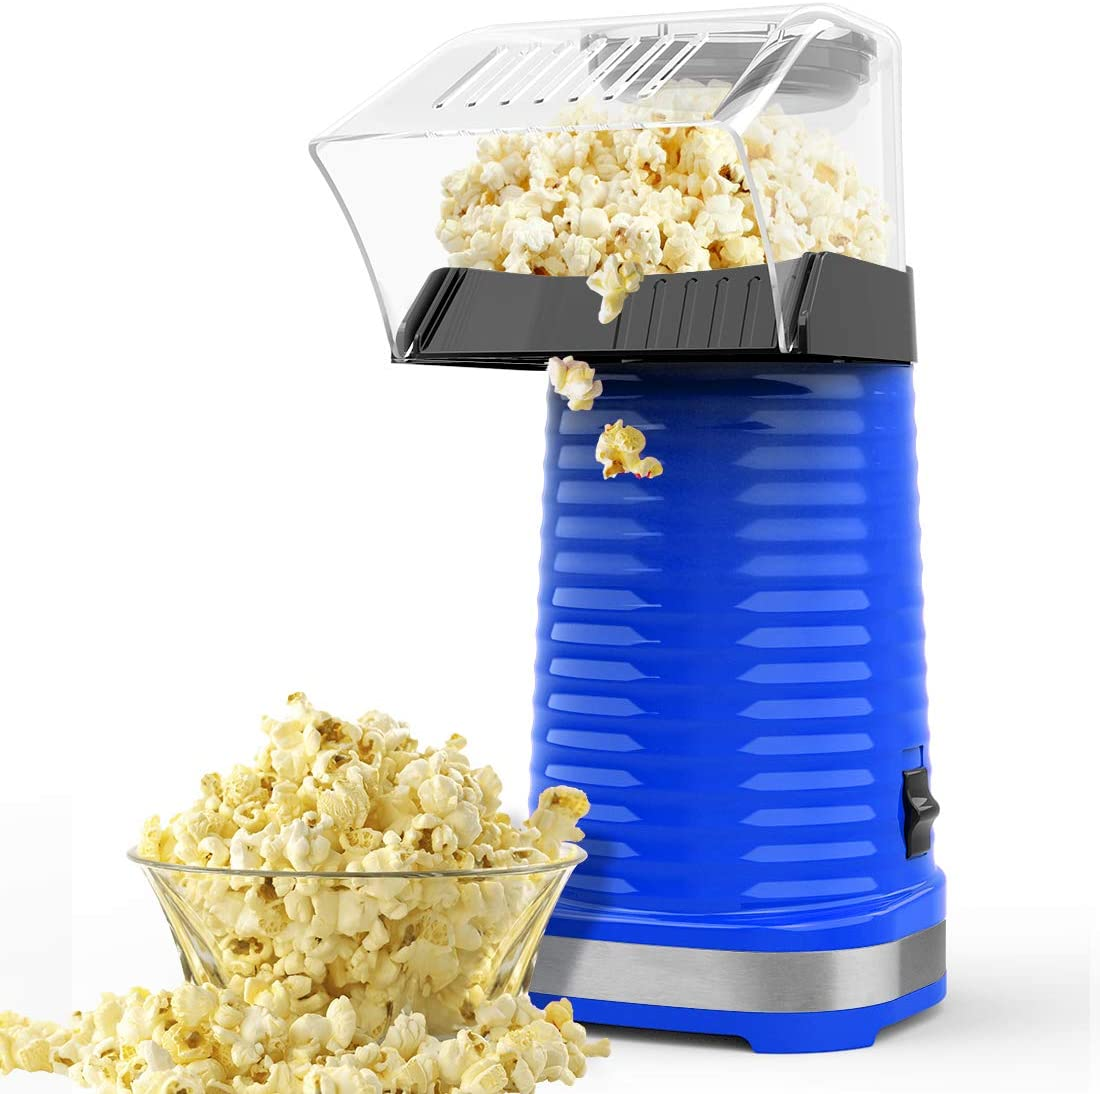 Electric Popcorn Maker Machine Healthy /& Delicious Snack For Family Gathering 1200W Fast Hot Air Popcorn Popper With Top Cover Safe ETL Certified Easy To Clean